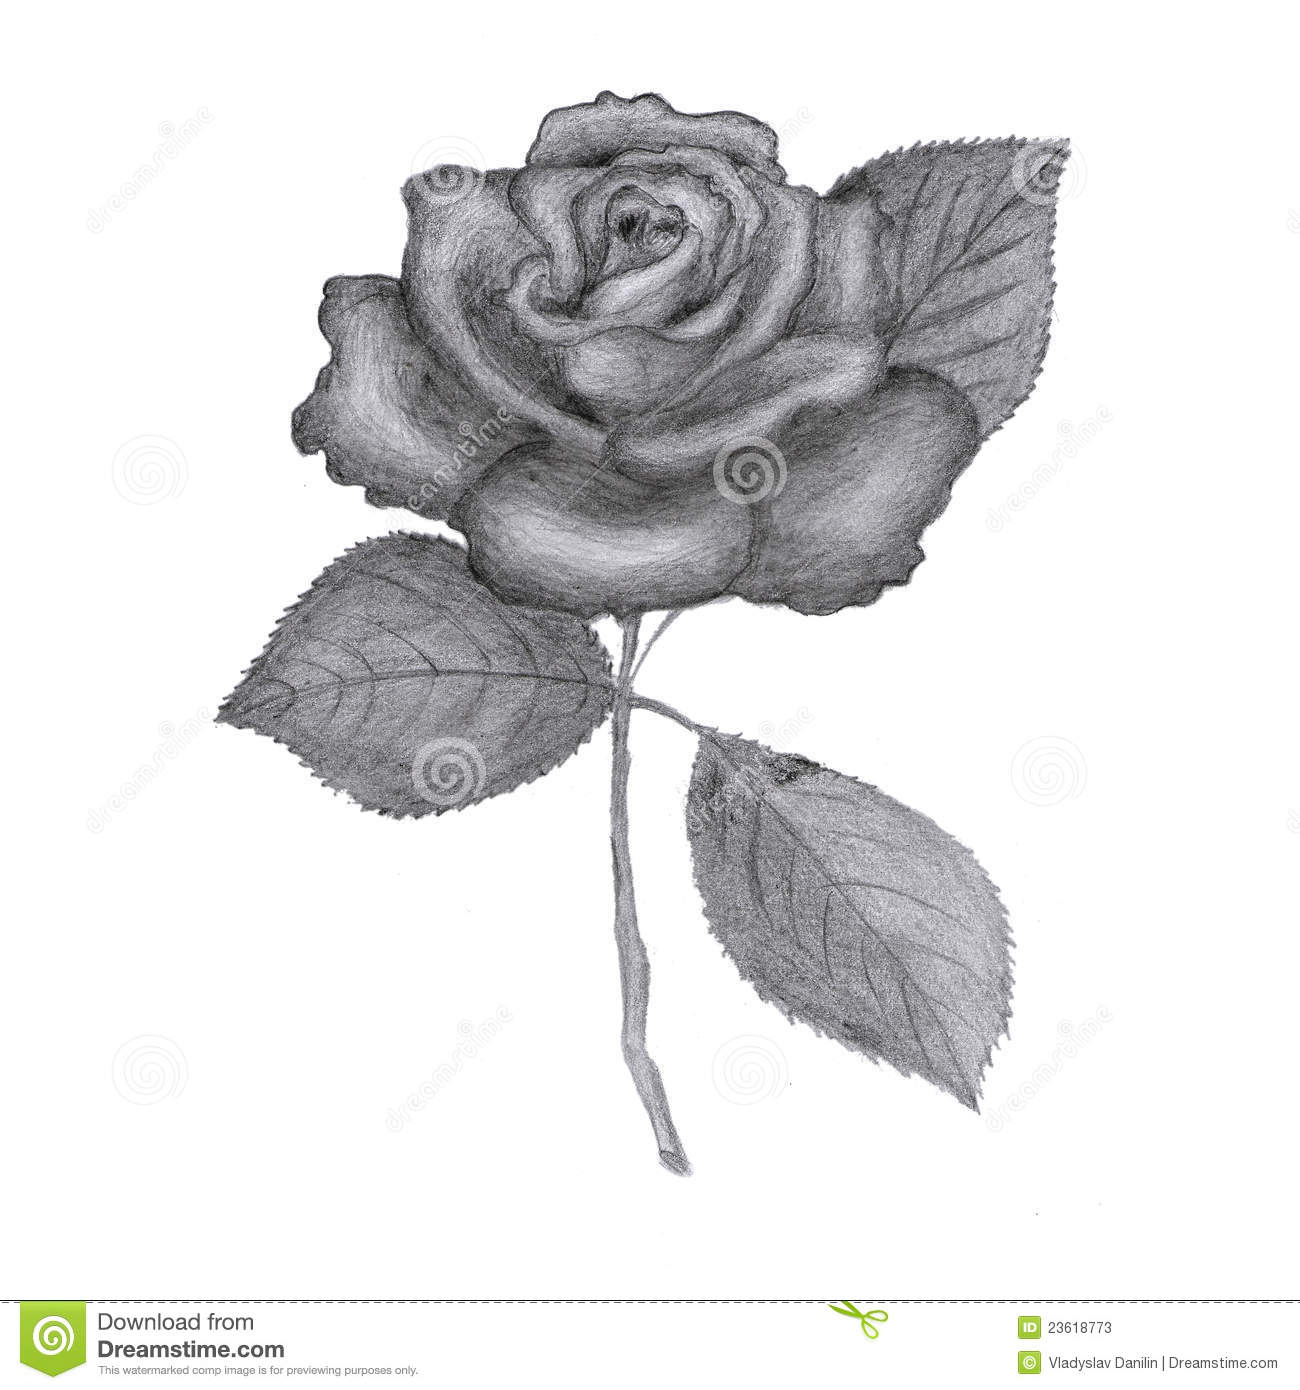 Drawn rose open Open Drawn How To Drawn